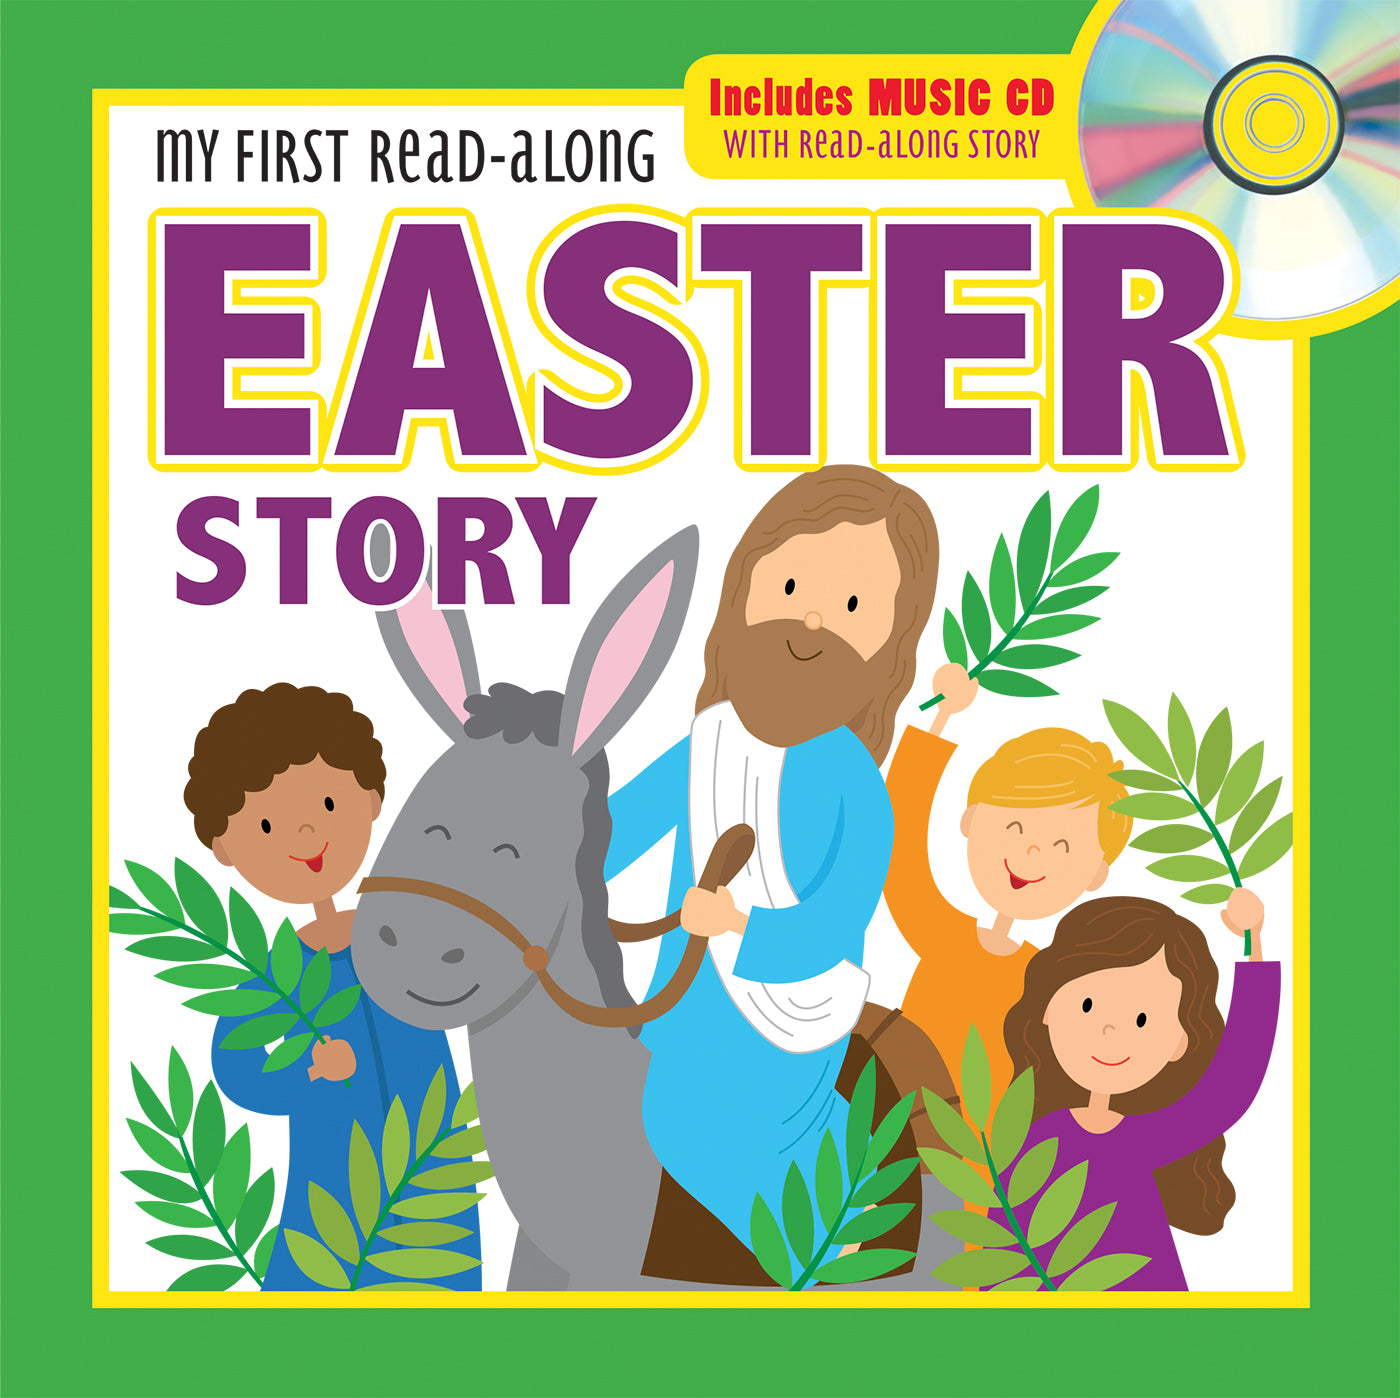 My First Read-Along Easter Story